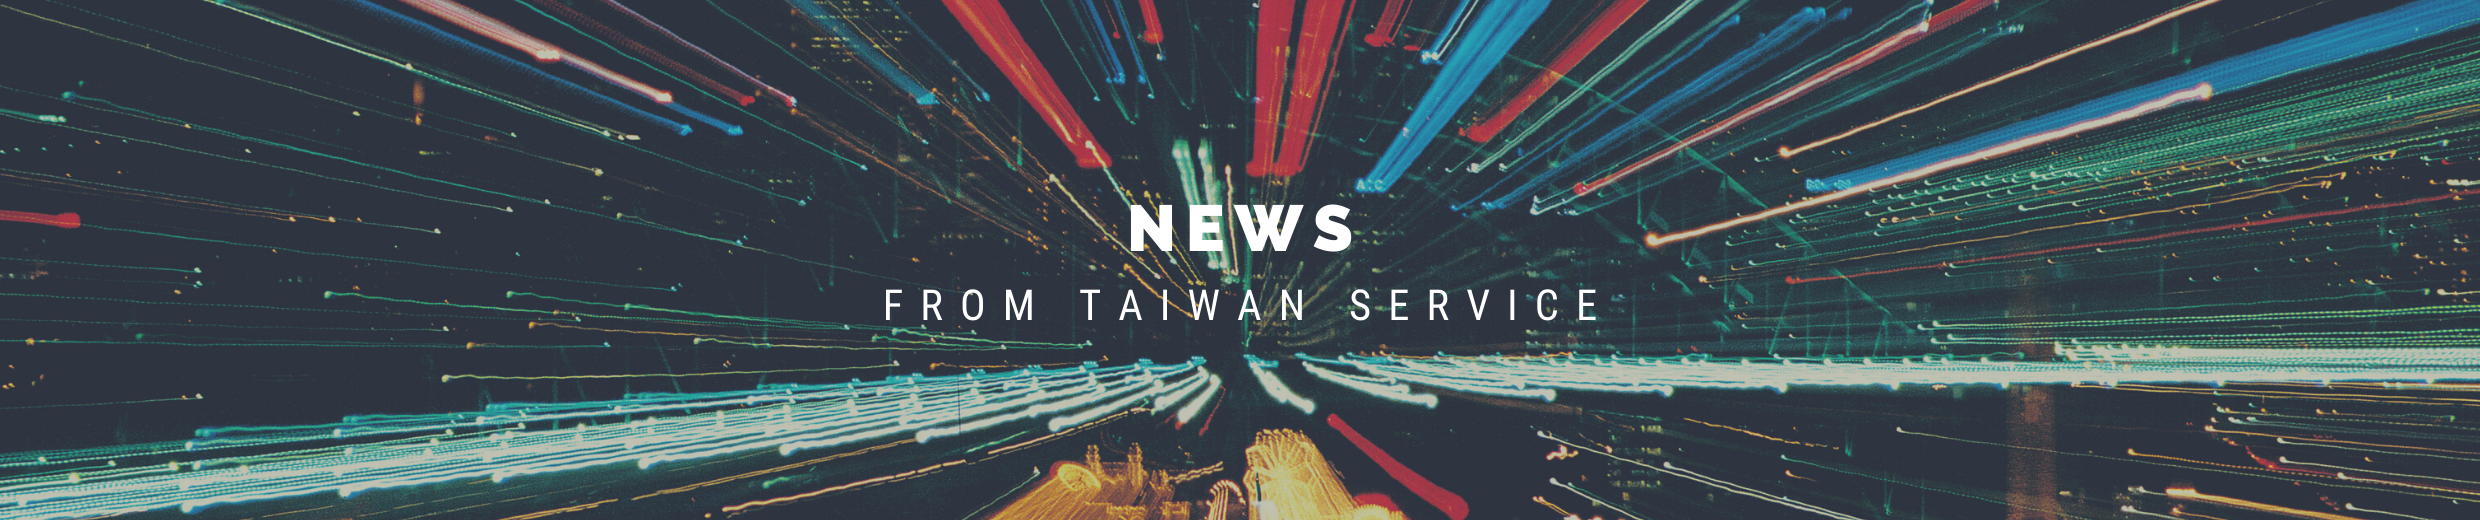 News from Taiwan Service